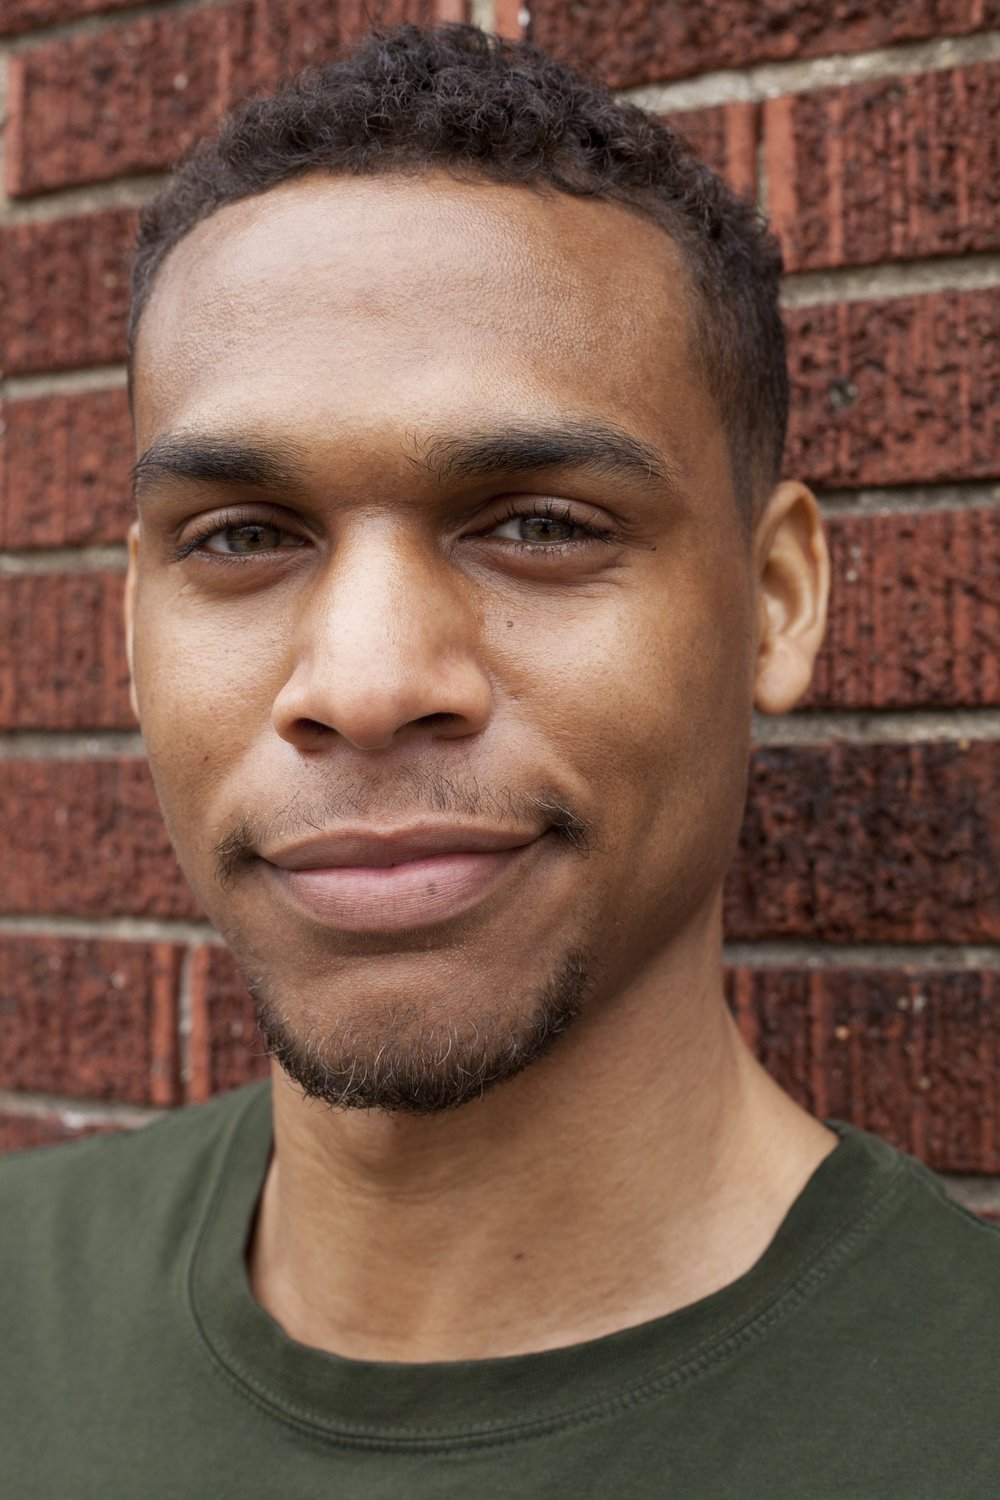 Chris Robinson - Chris Robinson is a Toronto native who has taped sets for Kevin Hart's LOL network as well as Just For Laughs. He's was also awarded $25,000 when he was crowned Sirius XMs Top Comic.IG: @snapshotrobinson